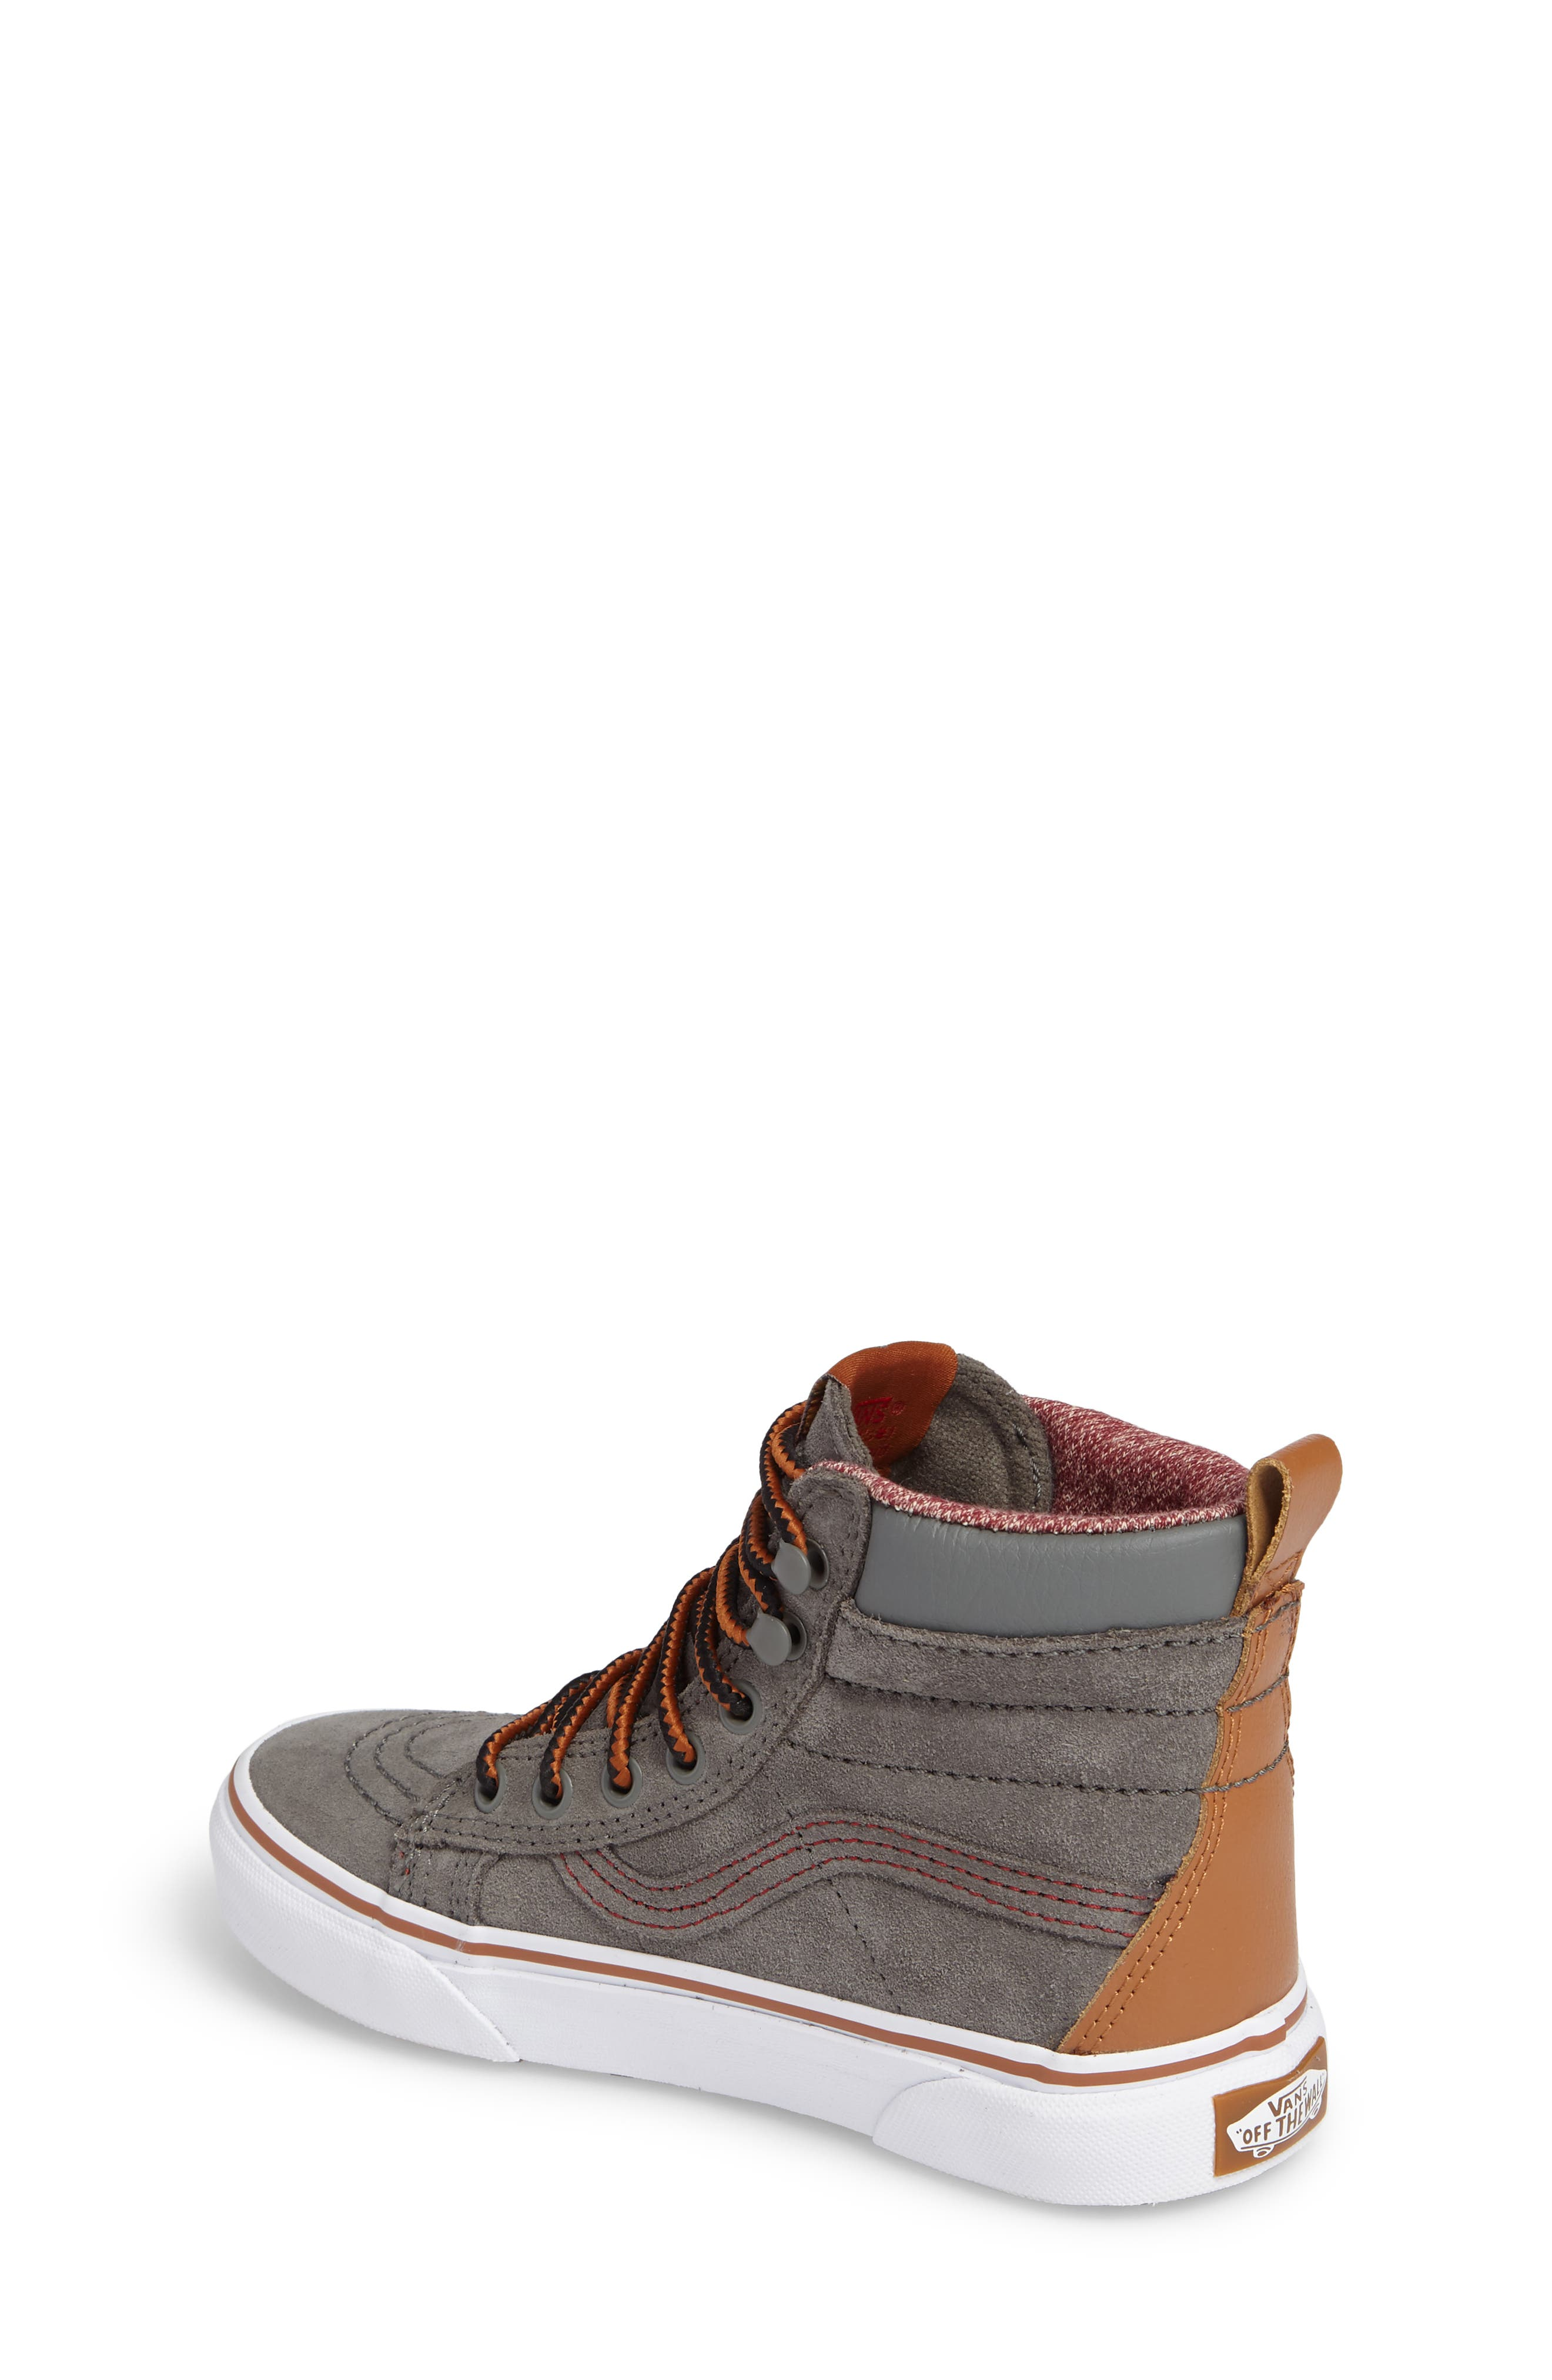 SK8-Hi Sneaker,                             Alternate thumbnail 15, color,